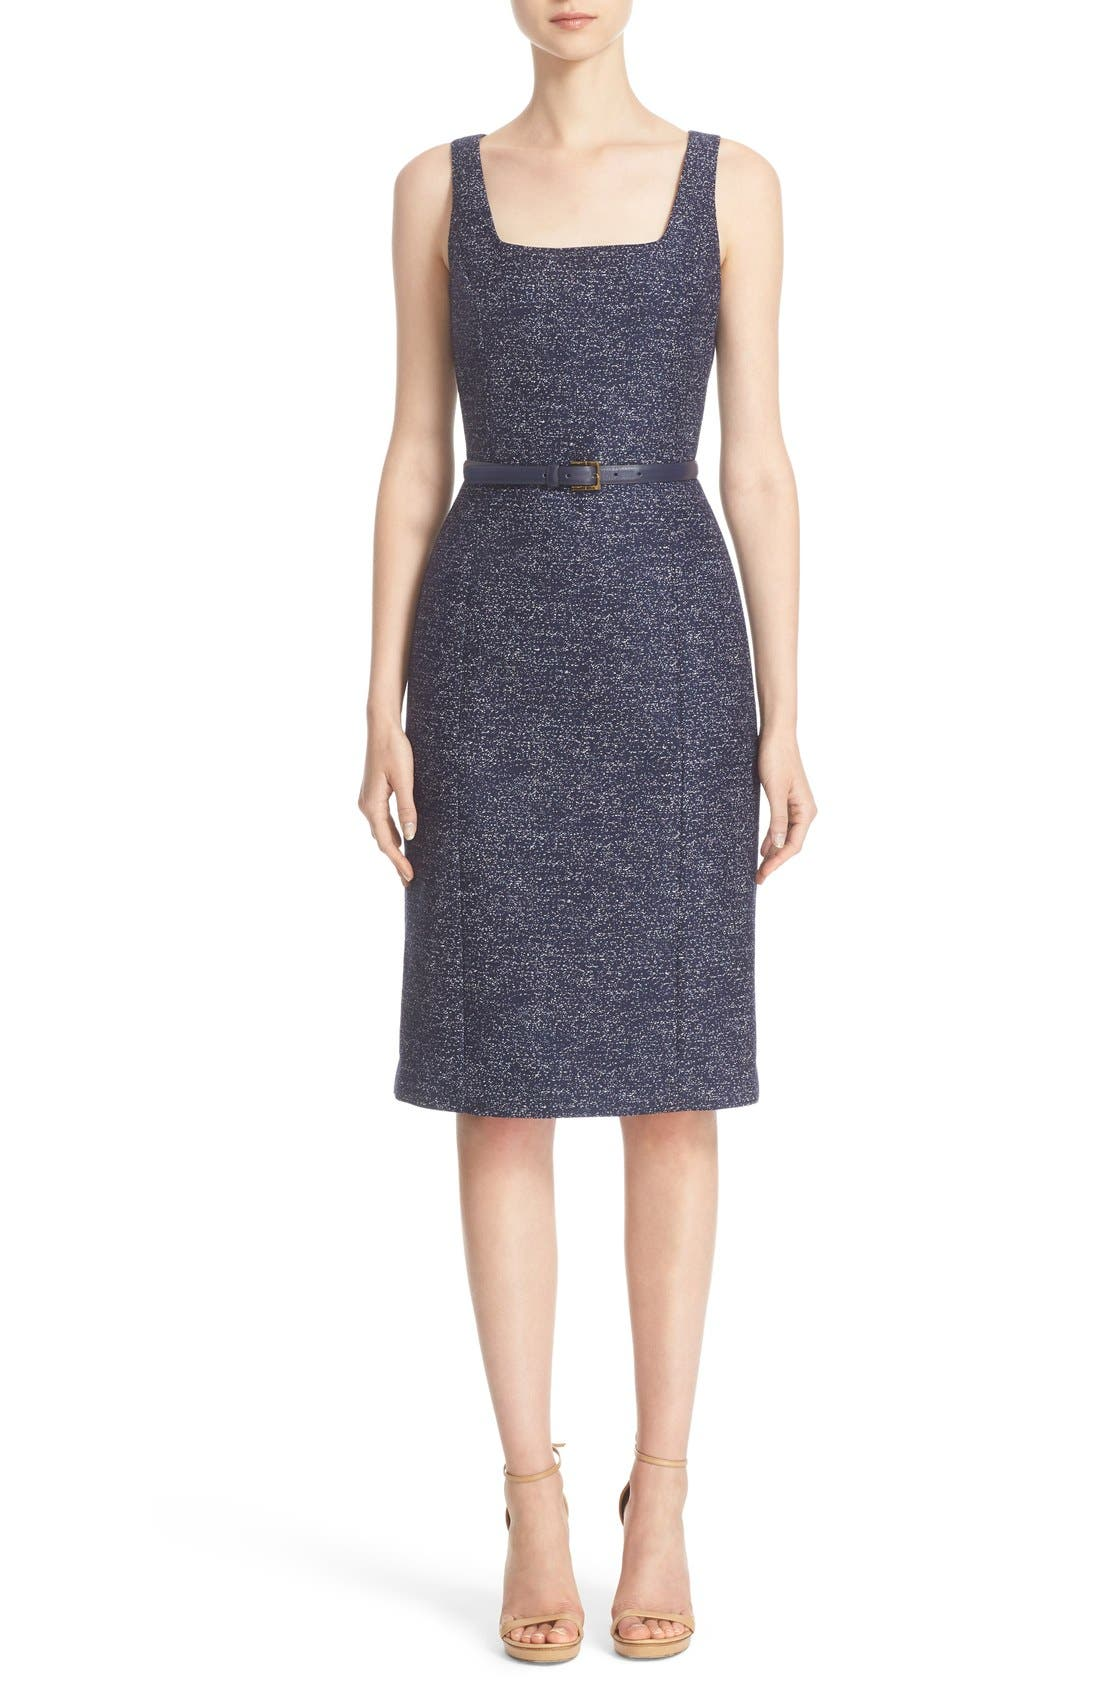 MICHAEL KORS Wool Jacquard Dress